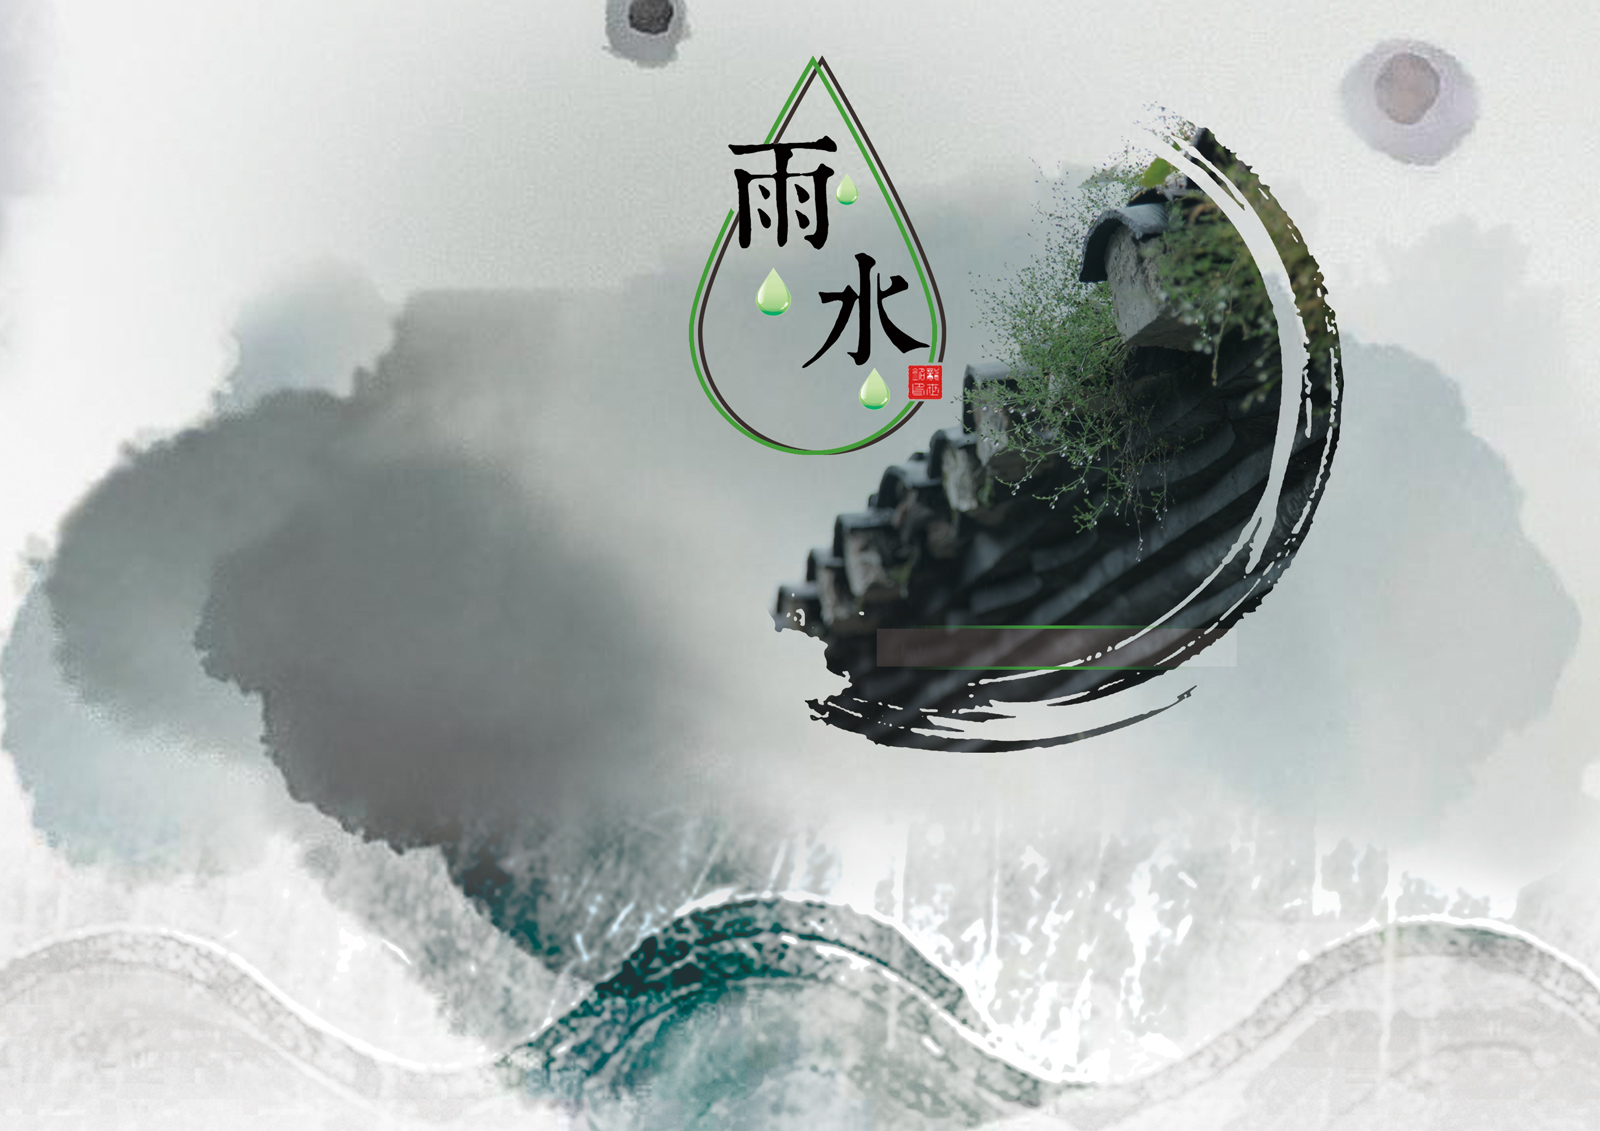 chinesefontdesign.com 2017 02 19 18 50 28 The jiangnan rainy season in China   PSD File Free Download